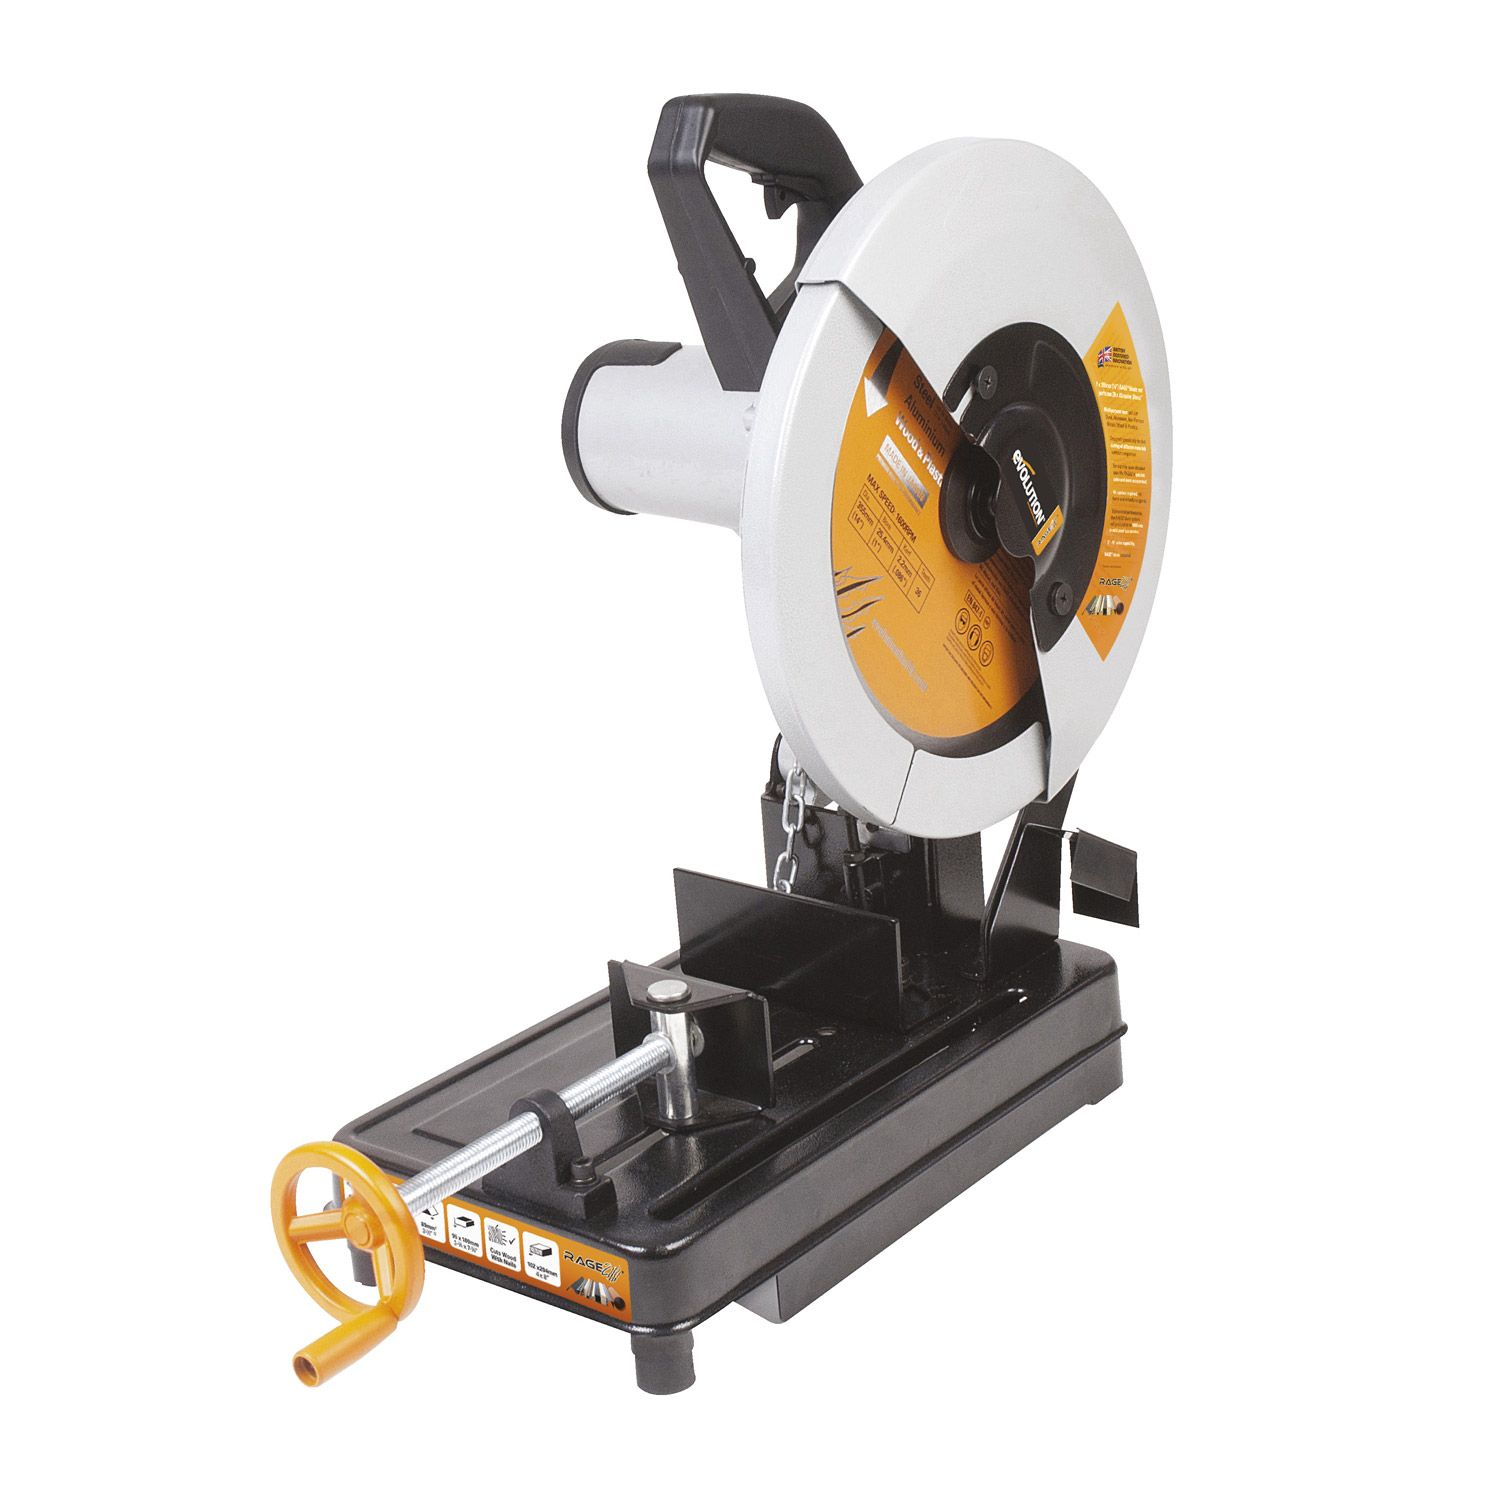 Leroy merlin tools pinterest evolution multi purpose chop saw cuts steel aluminum wood and plastics using a single blade and stone concrete and bricks with a diamond blade greentooth Image collections